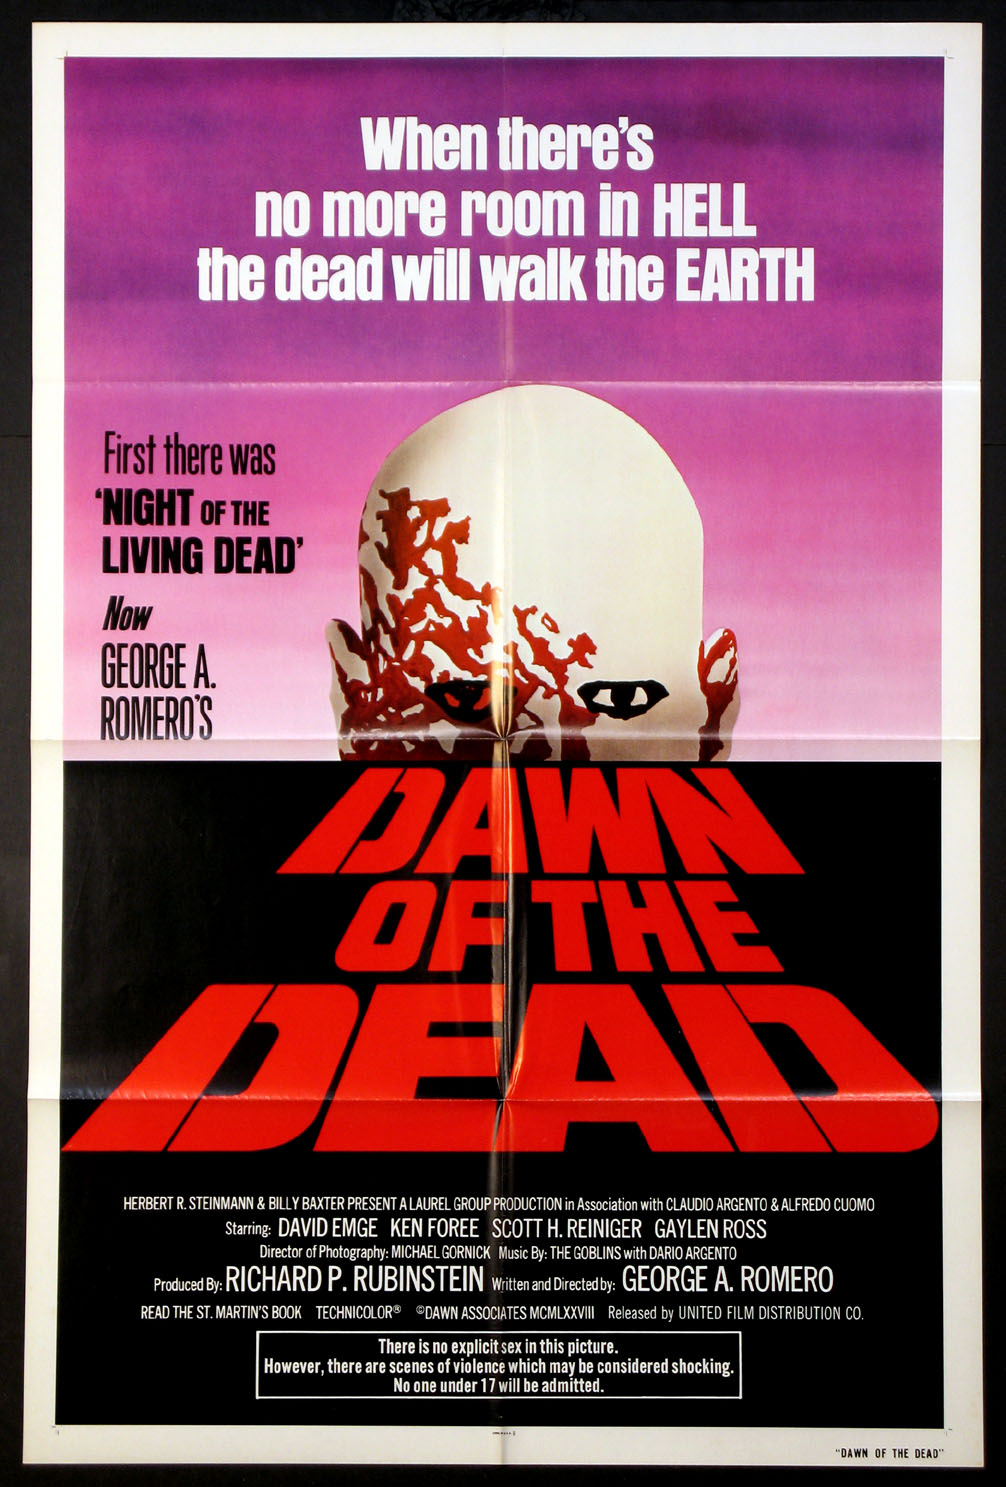 DAWN OF THE DEAD @ FilmPosters.com